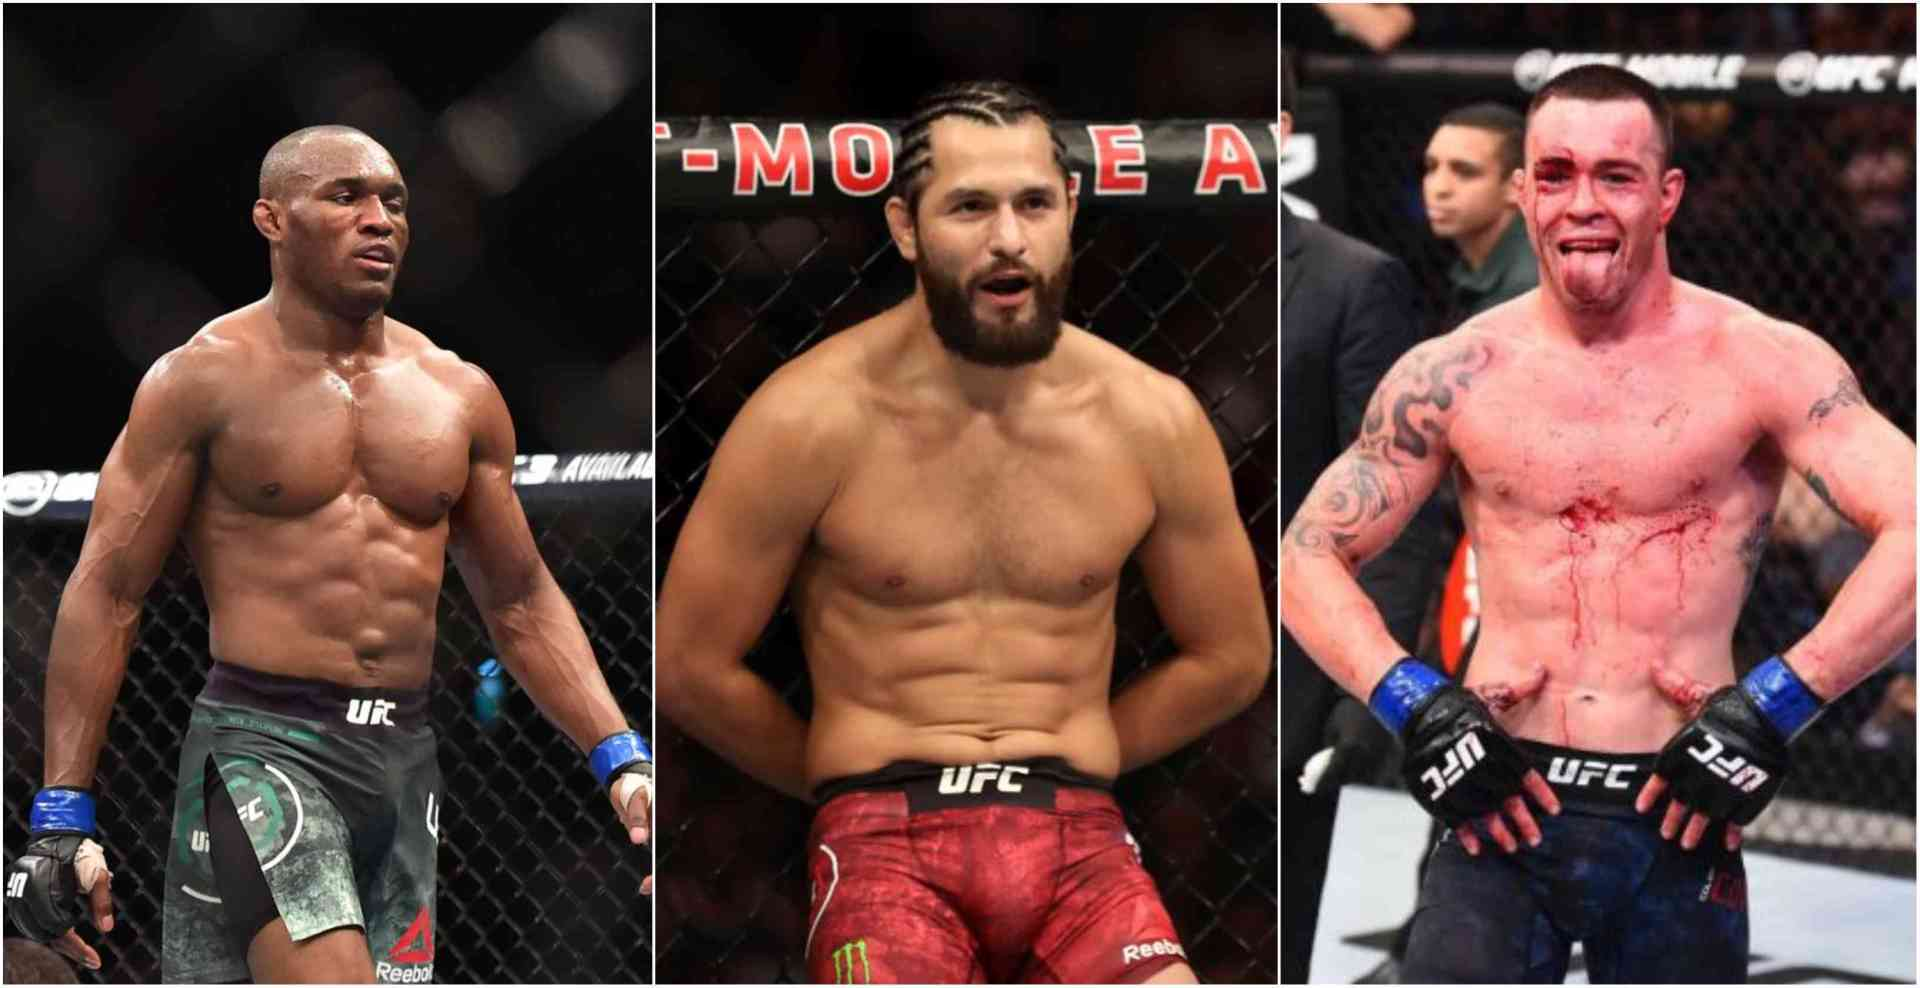 Jorge Masvidal in contention for title shot after Colby Covington talks 'hit a snag' - Covington